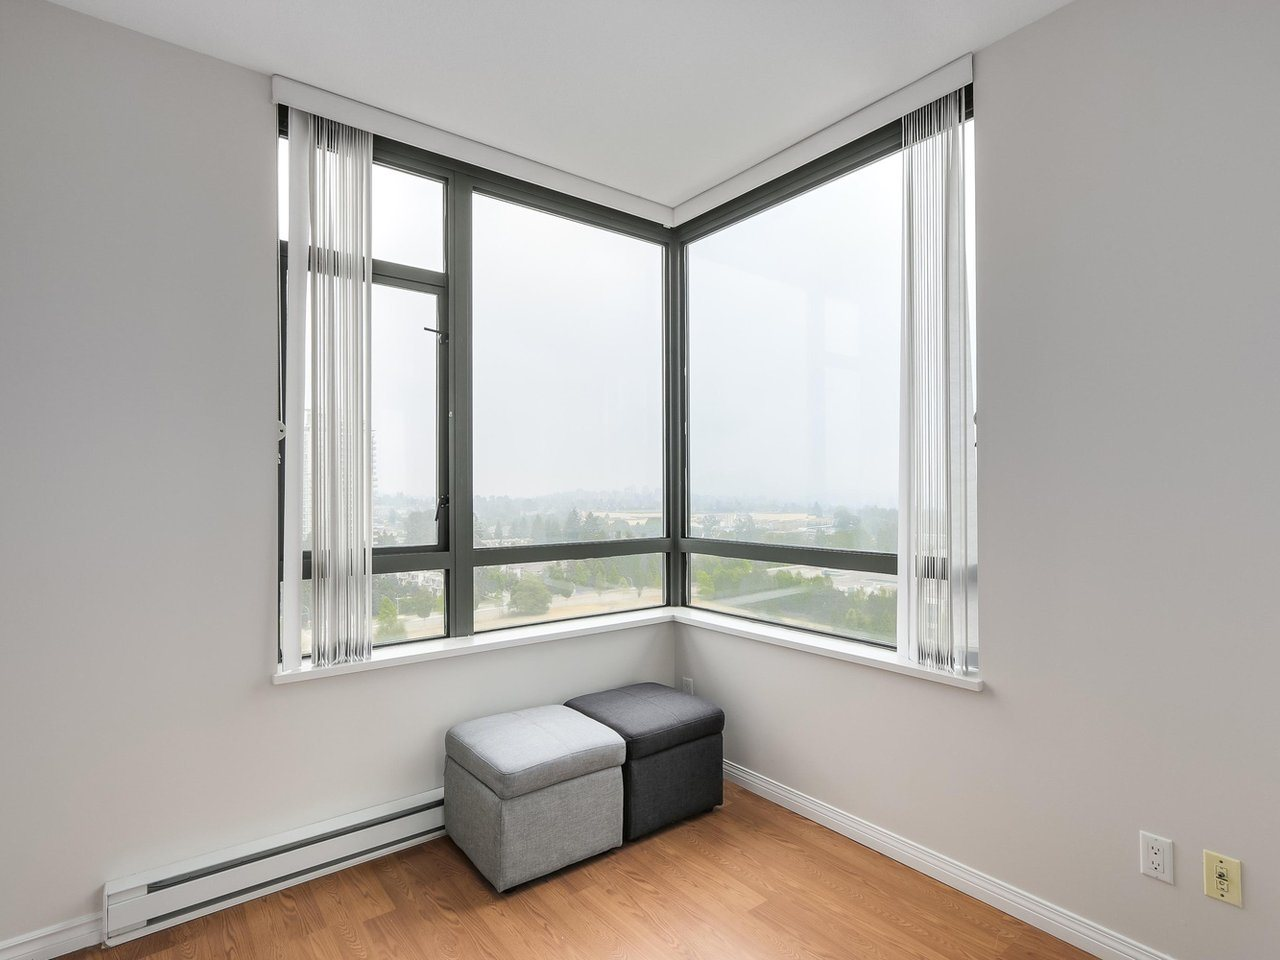 Condo Apartment at 1903 6837 STATION HILL DRIVE, Unit 1903, Burnaby South, British Columbia. Image 13